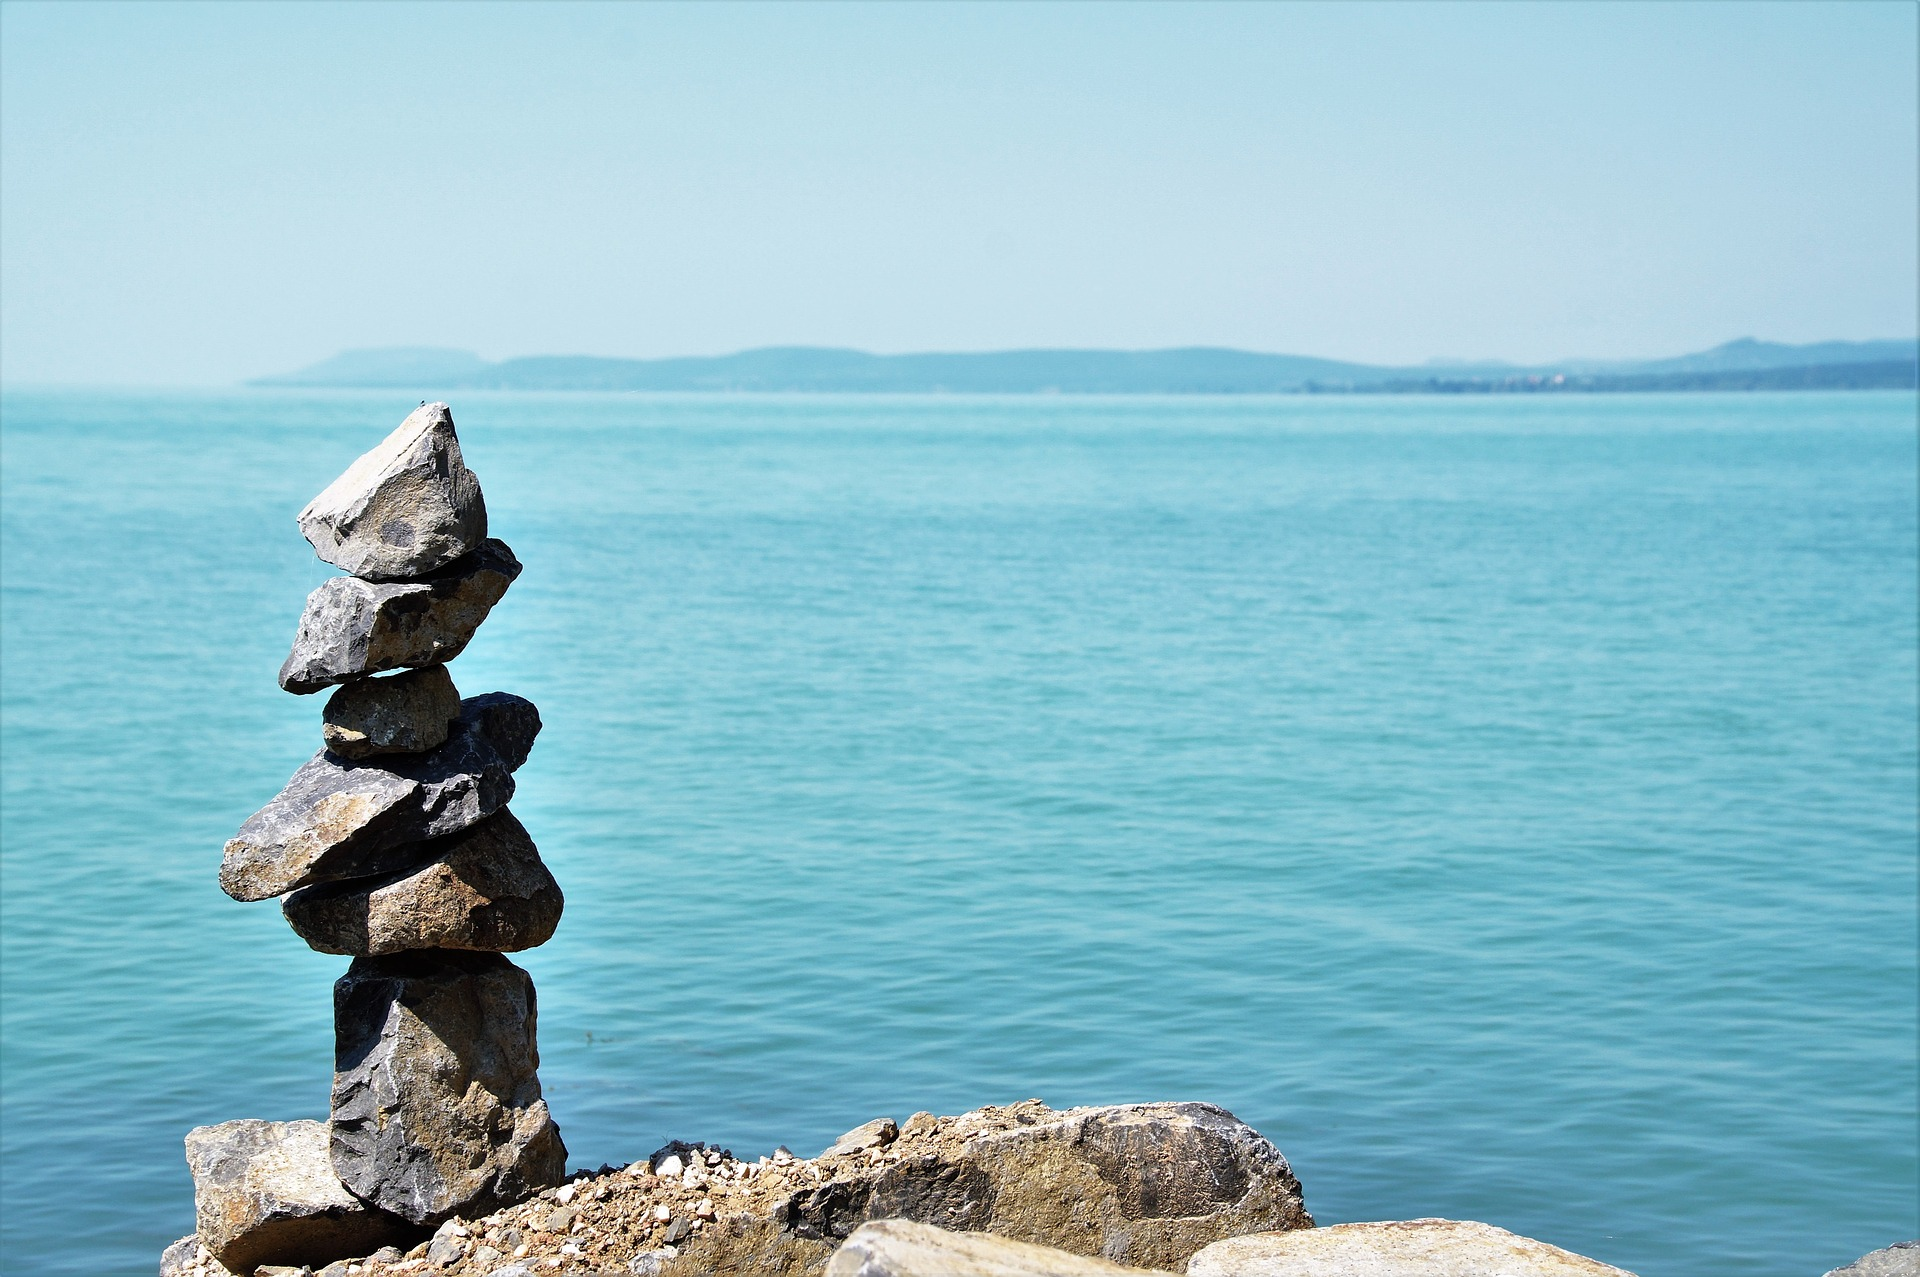 How can you achieve Balance without knowing the Foundation on which you stand?